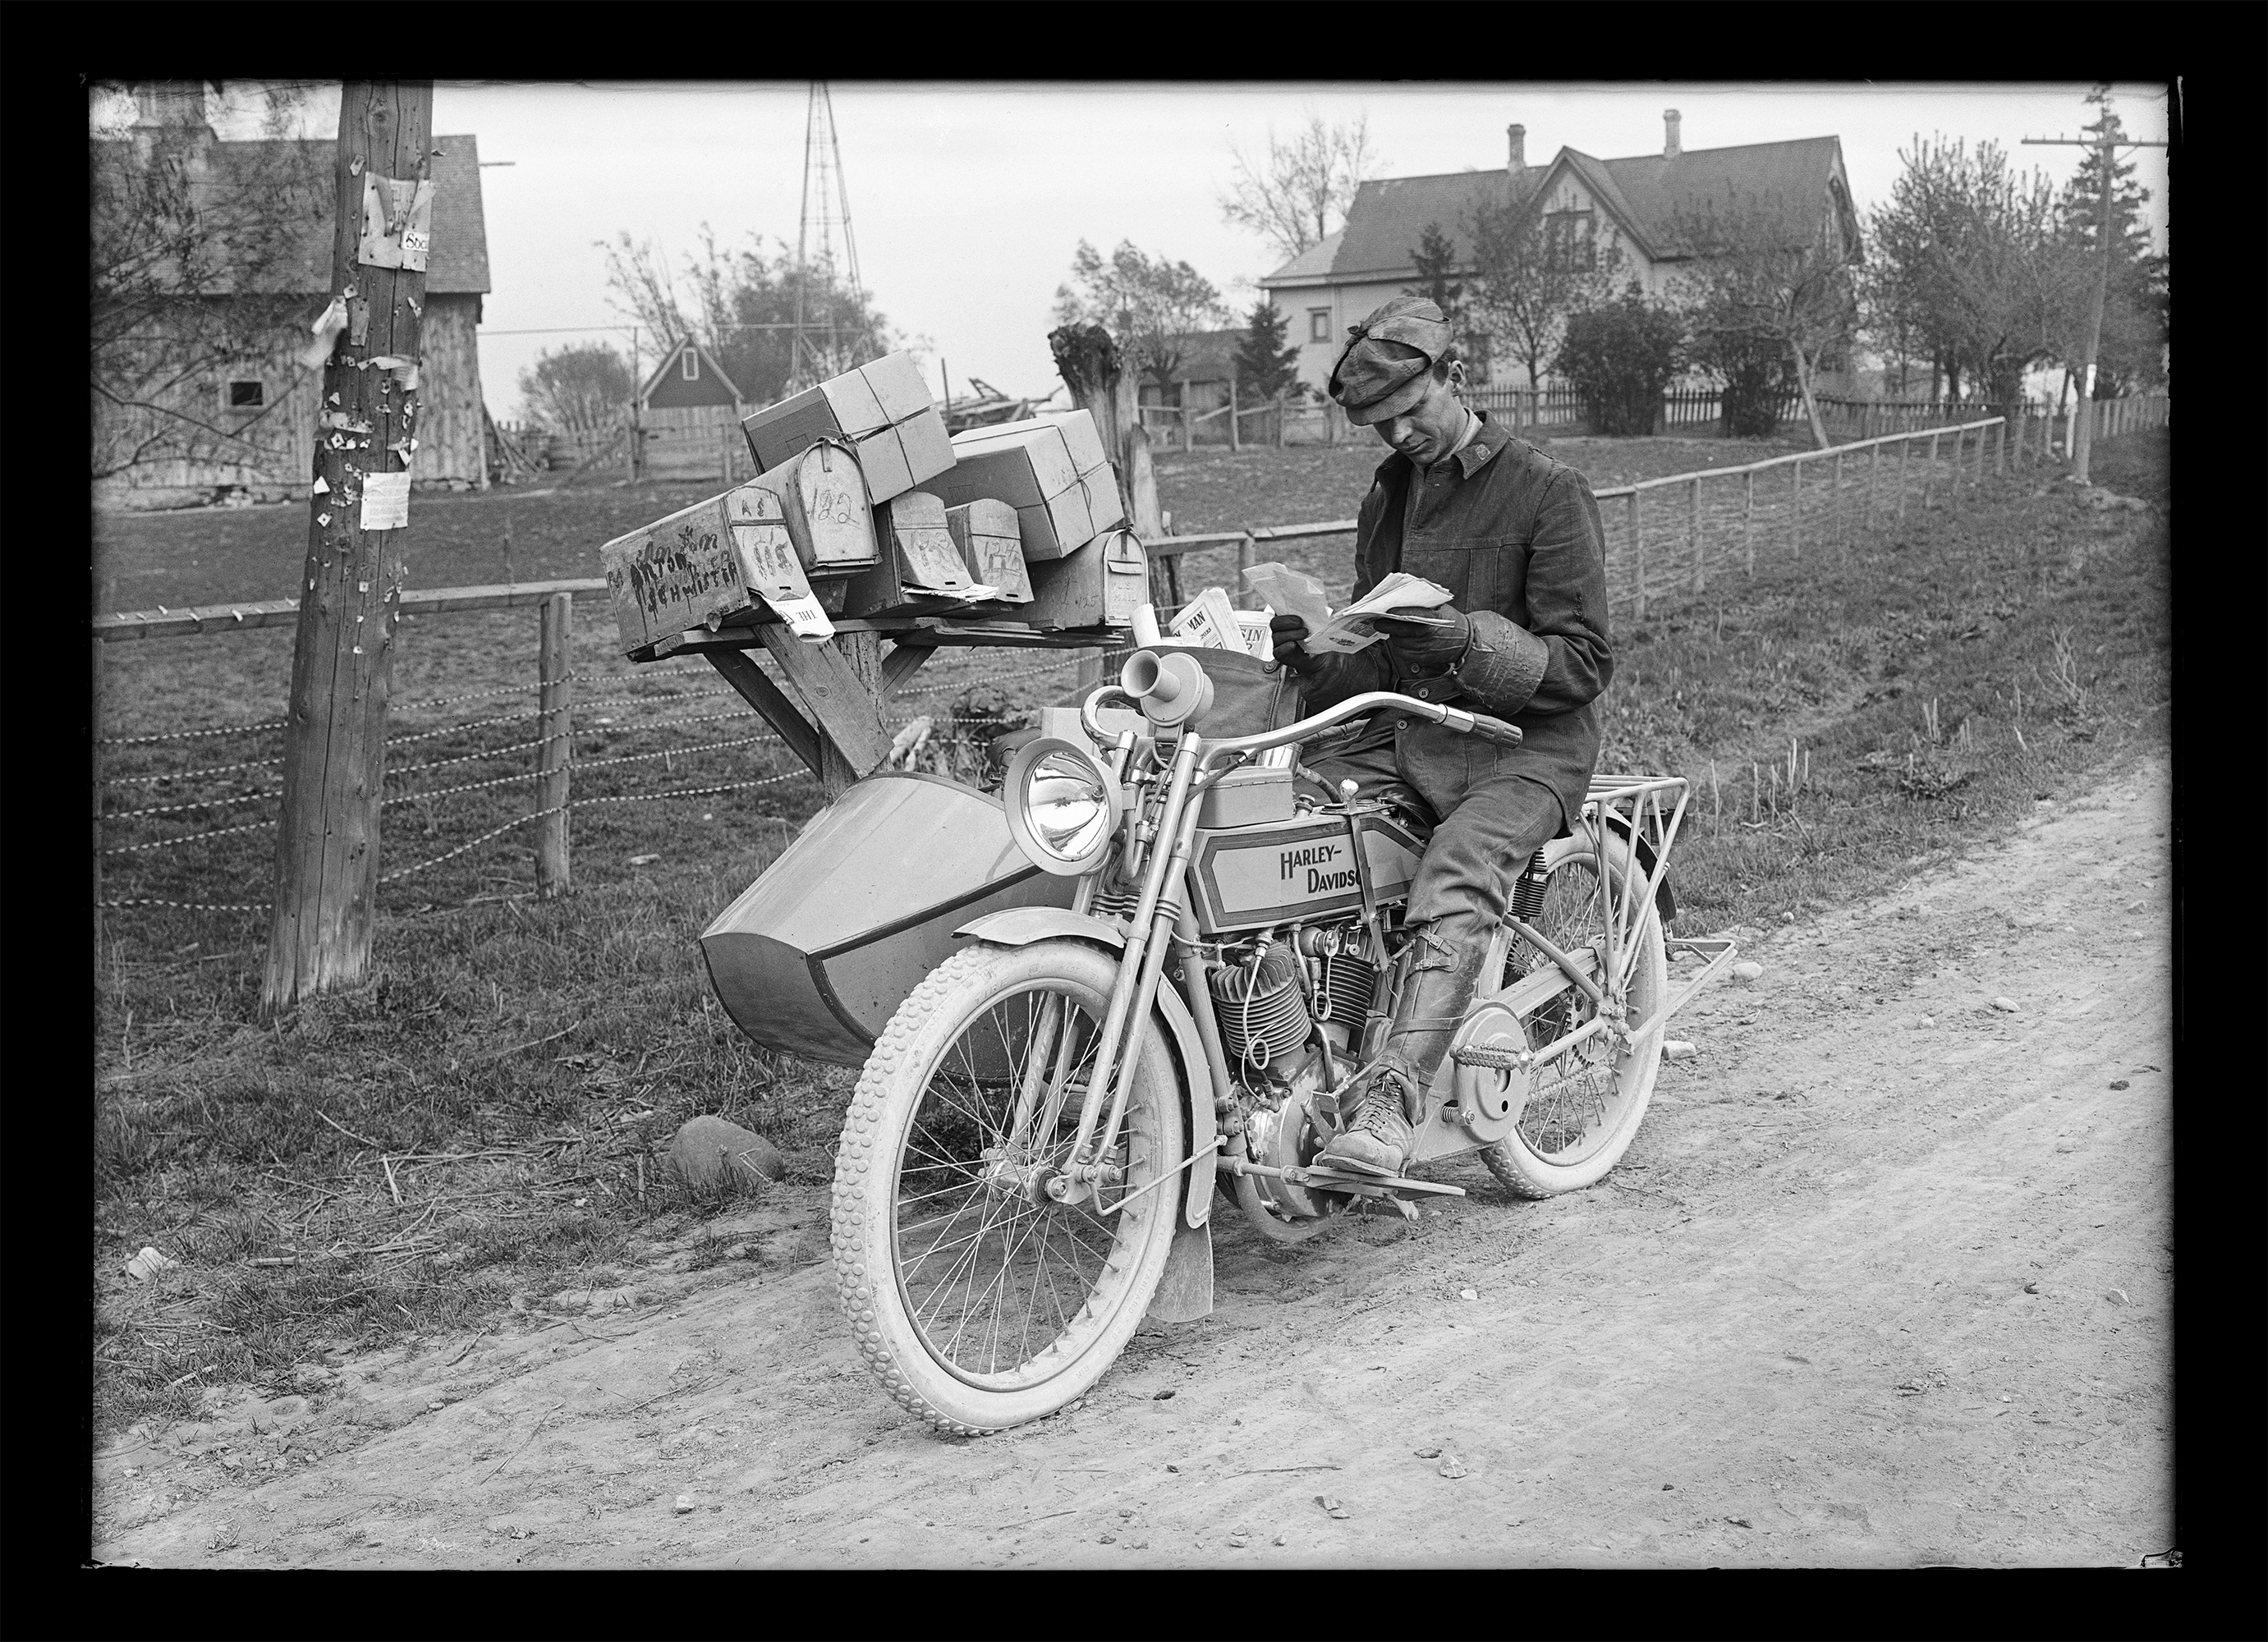 Sidecar rigs were a popular and practical choice for Rural Free Delivery.